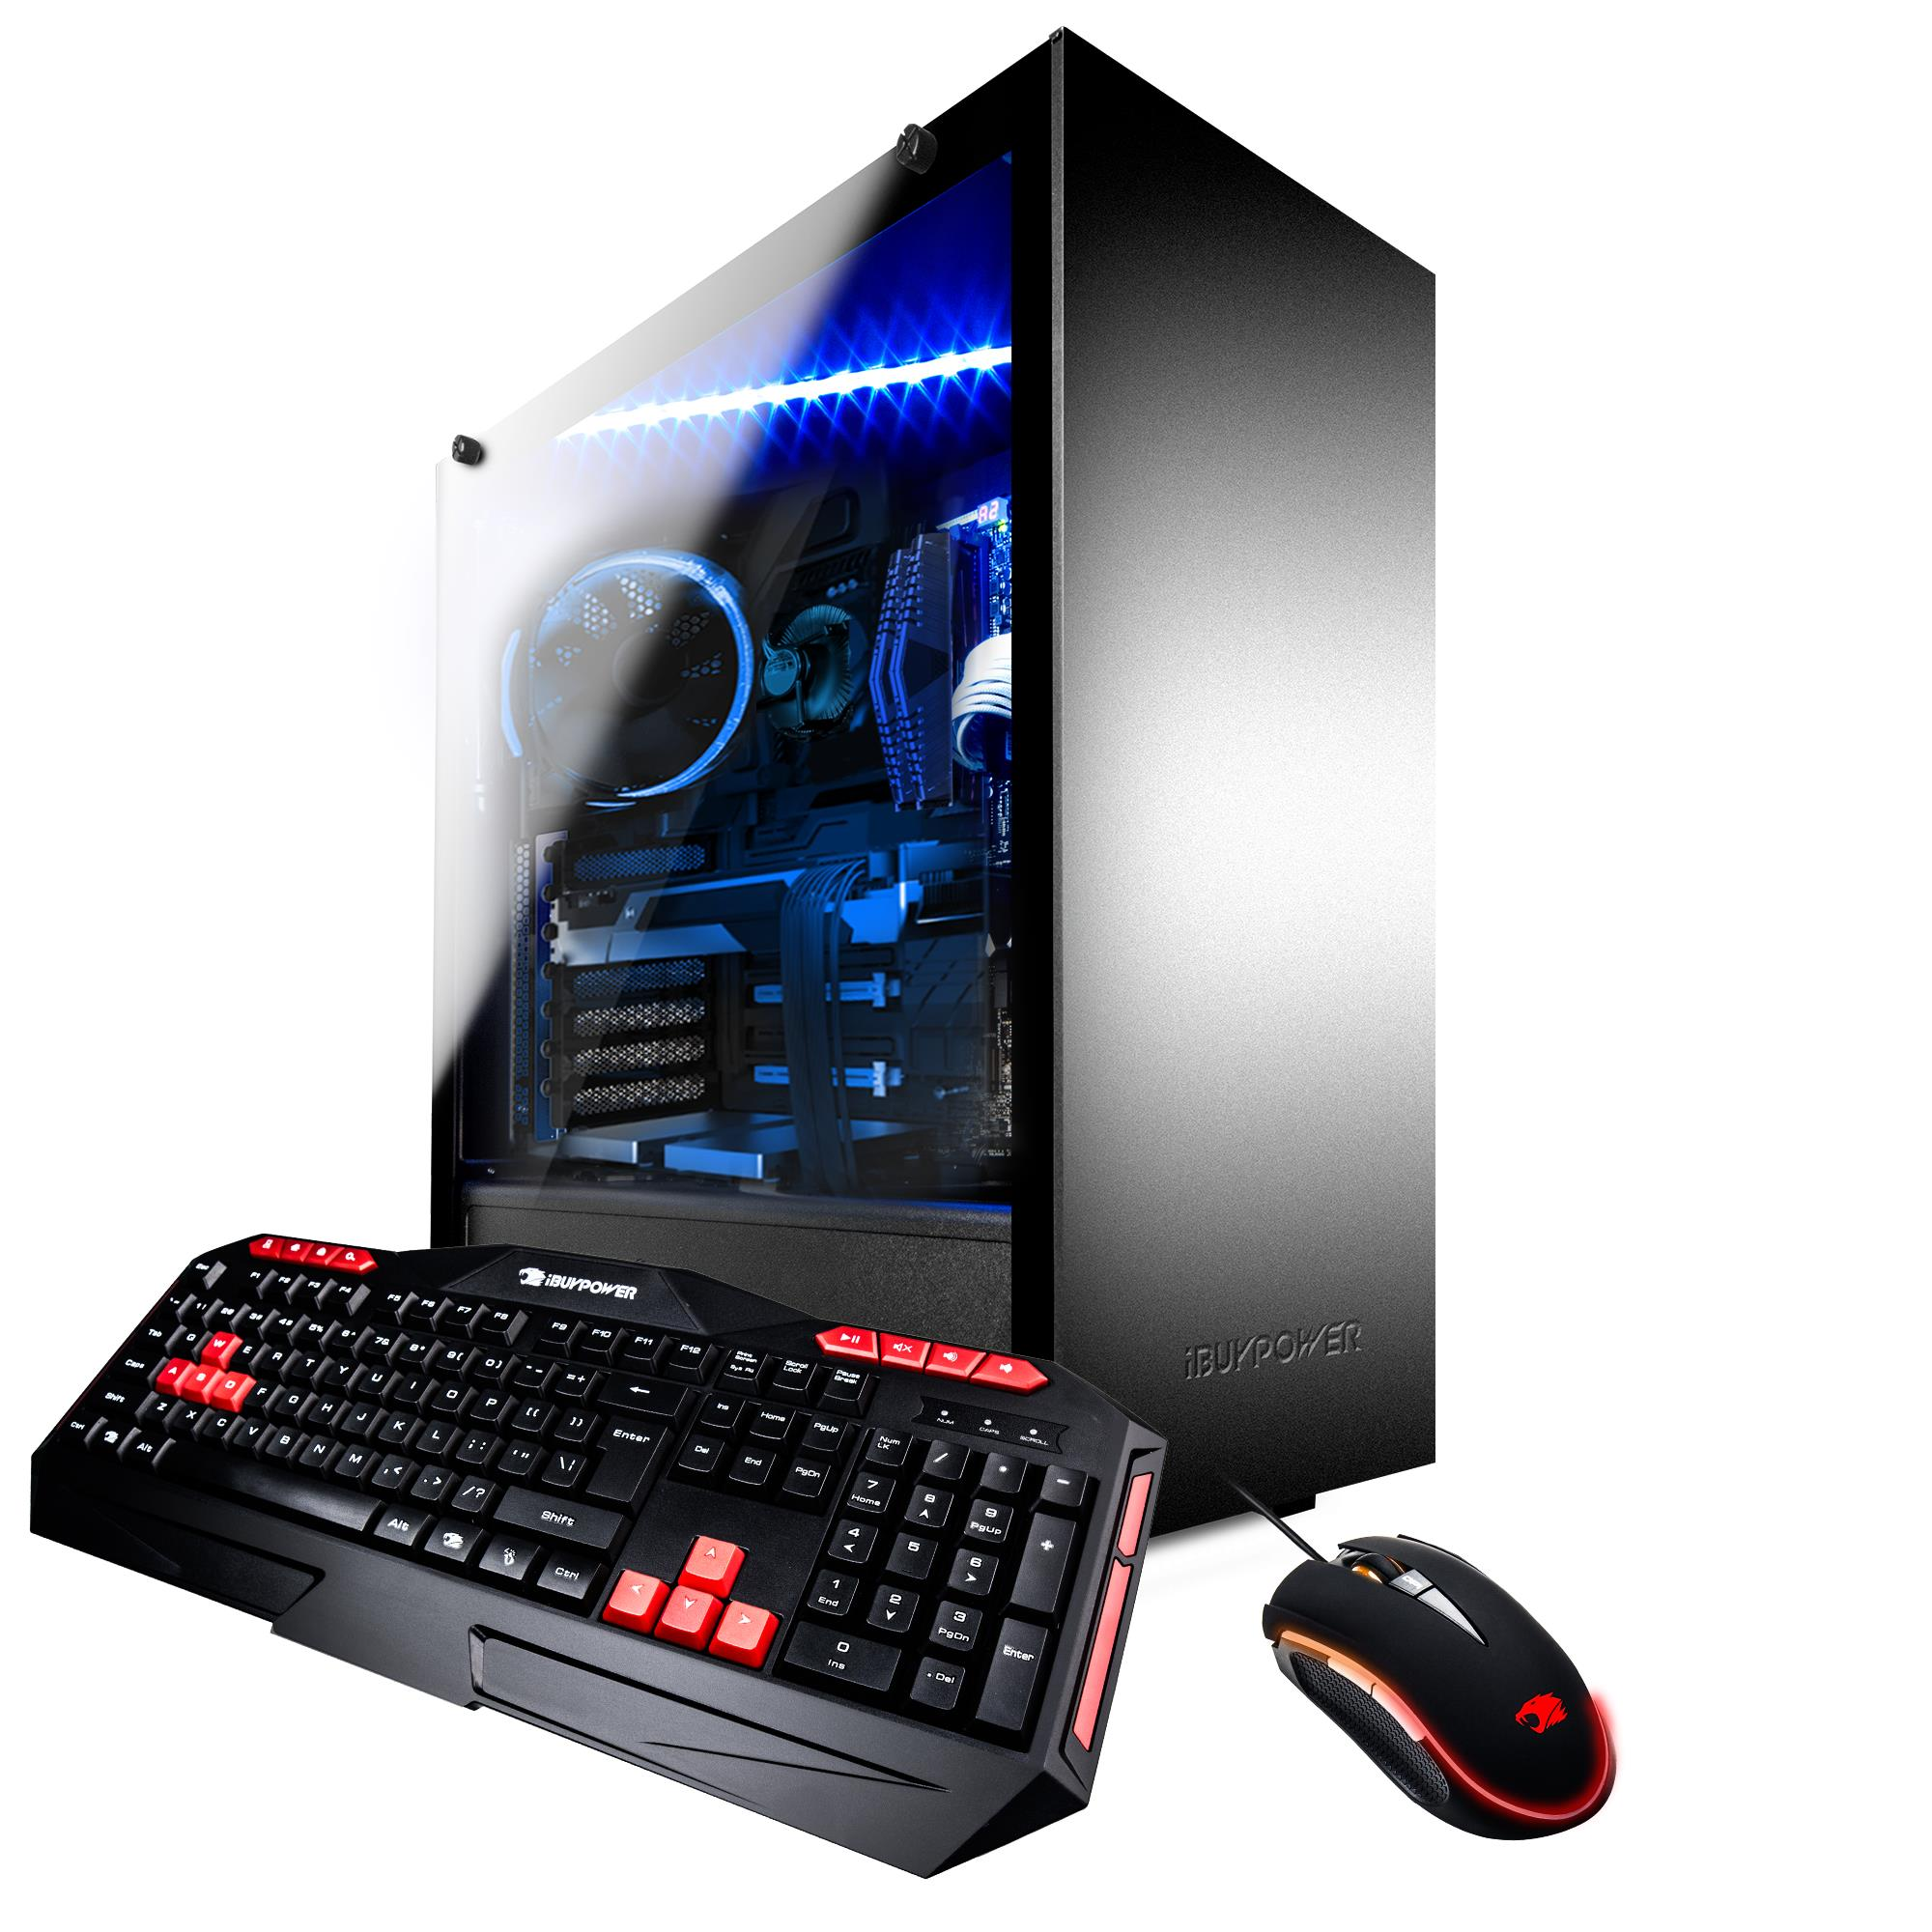 iBUYPOWER WACP8320K - Gaming Desktop PC - AMD FX 8320 - 8GB DDR3 Memory - NVIDIA GeForce GT710 1GB - 1TB Hard Drive - WACP8320K